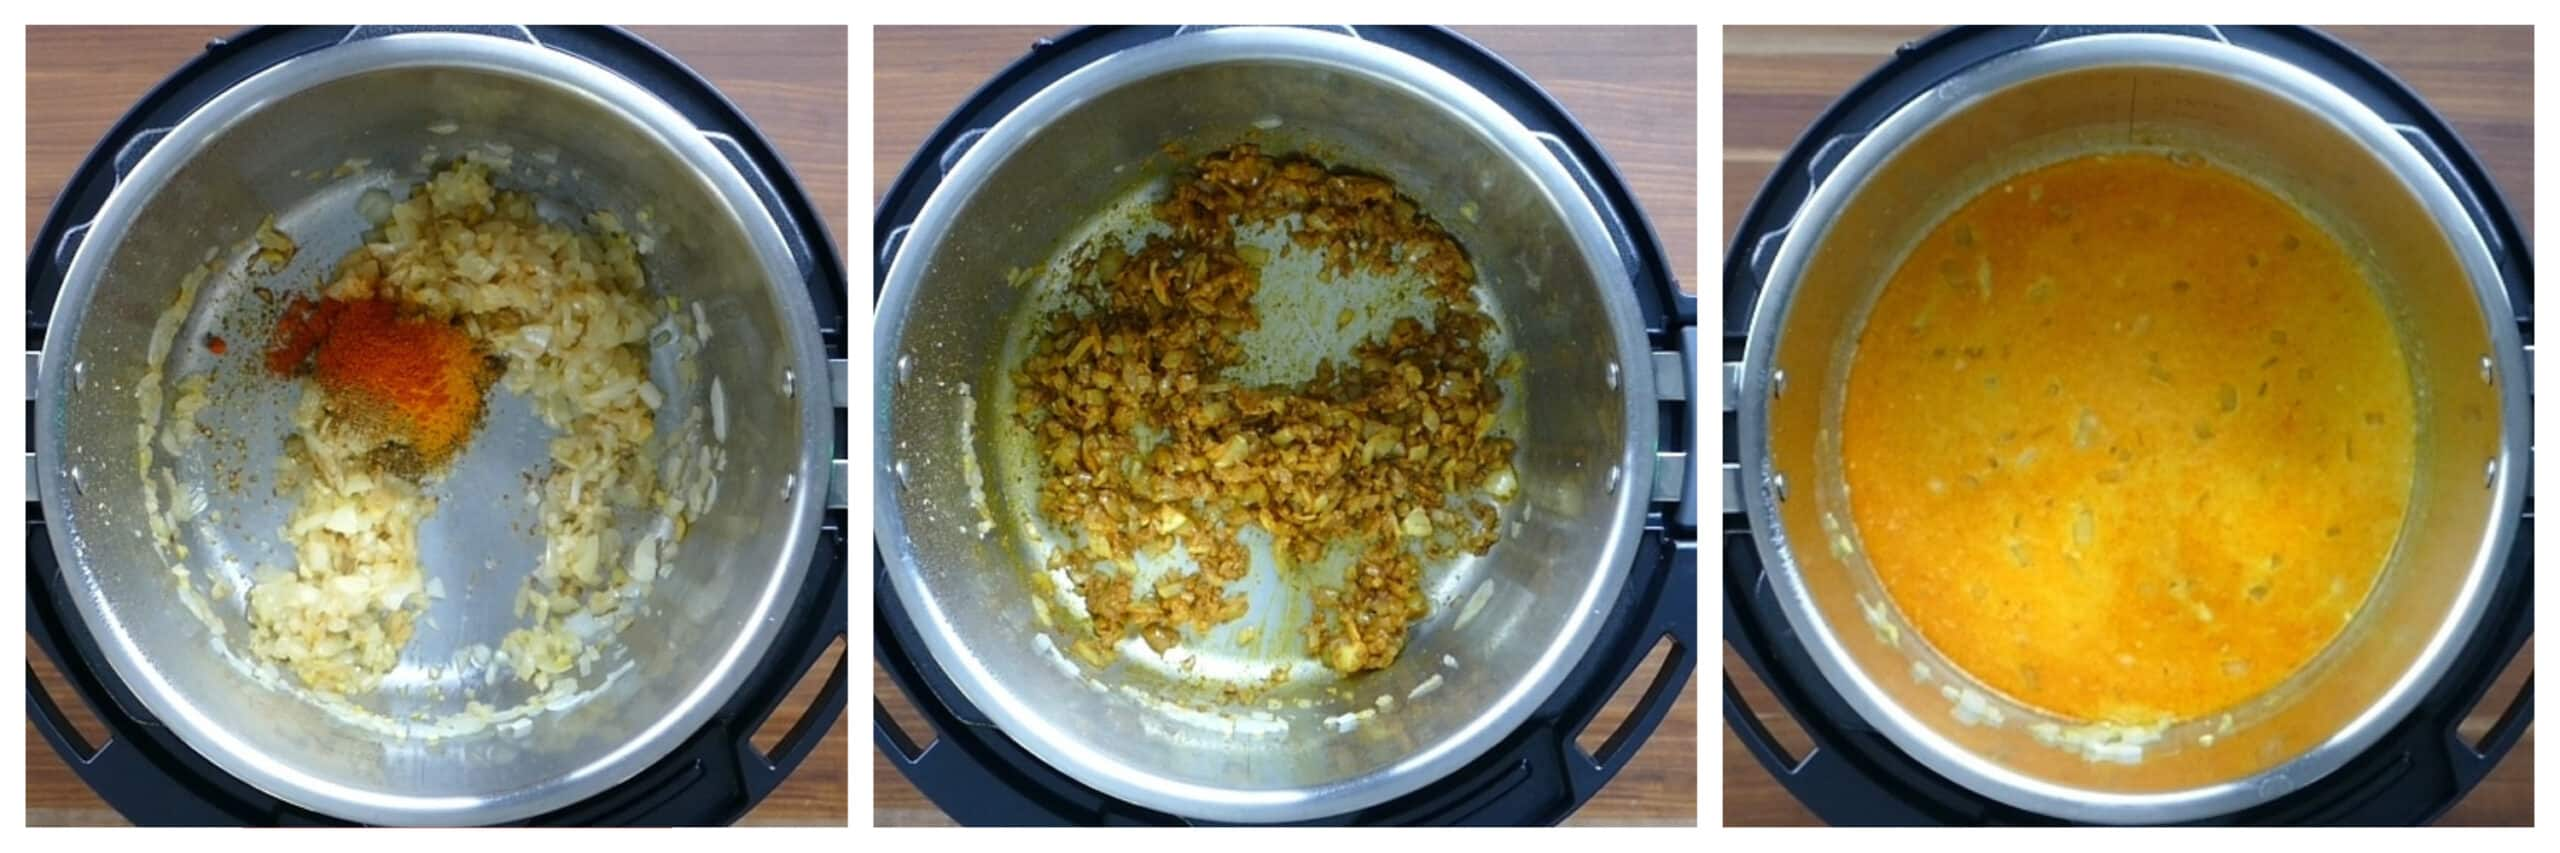 Instant Pot Curried Risotto Instructions - spices, stirred, liquids added